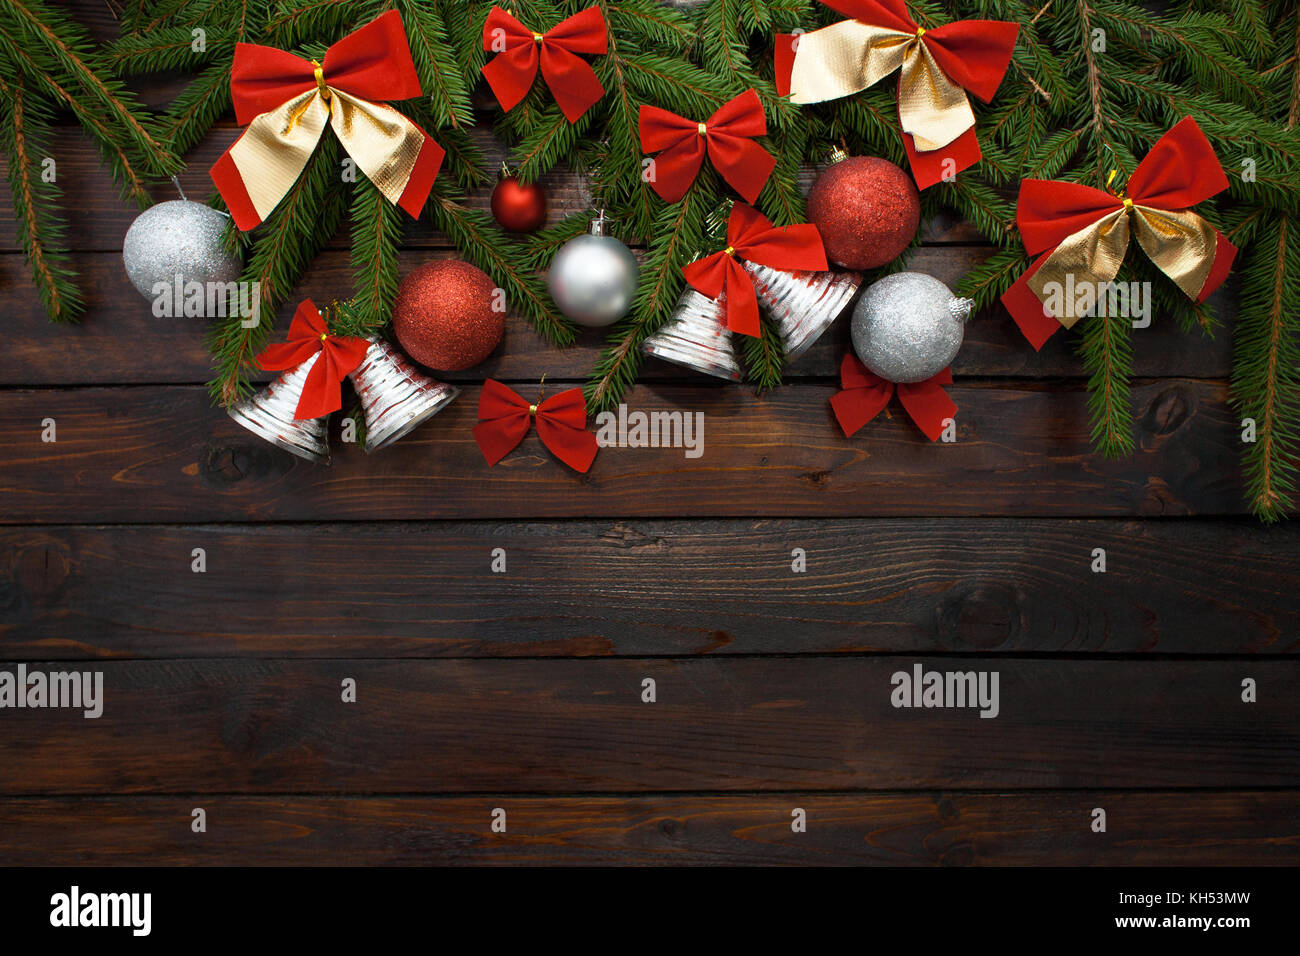 Green living spruce branches on a dark wooden background. New Year background with beautiful balls and red bows - Stock Image